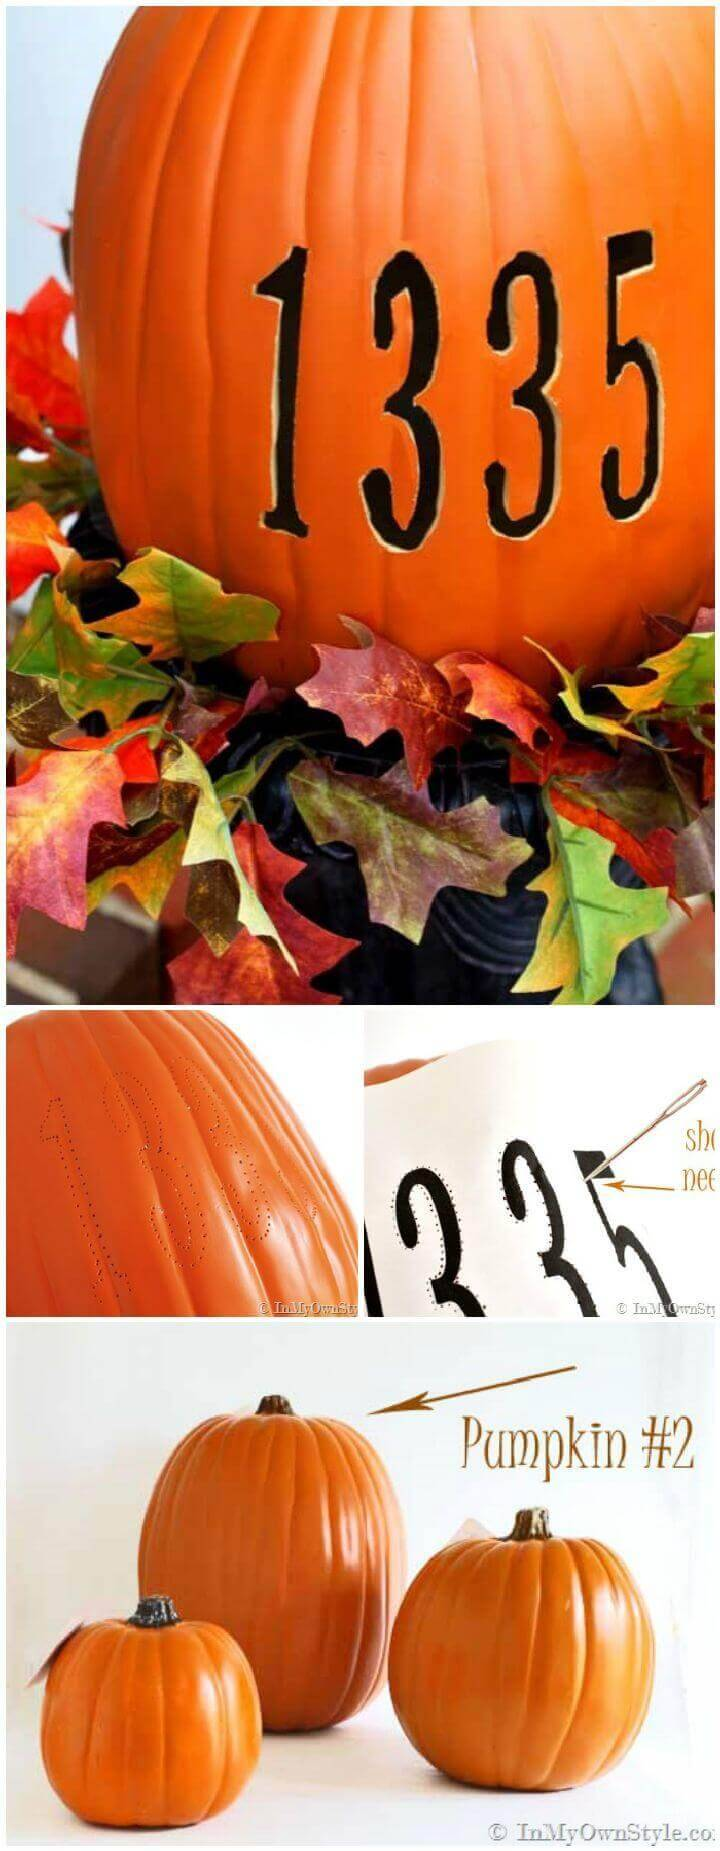 How to Carve a Pumpkin with a Hot Knife